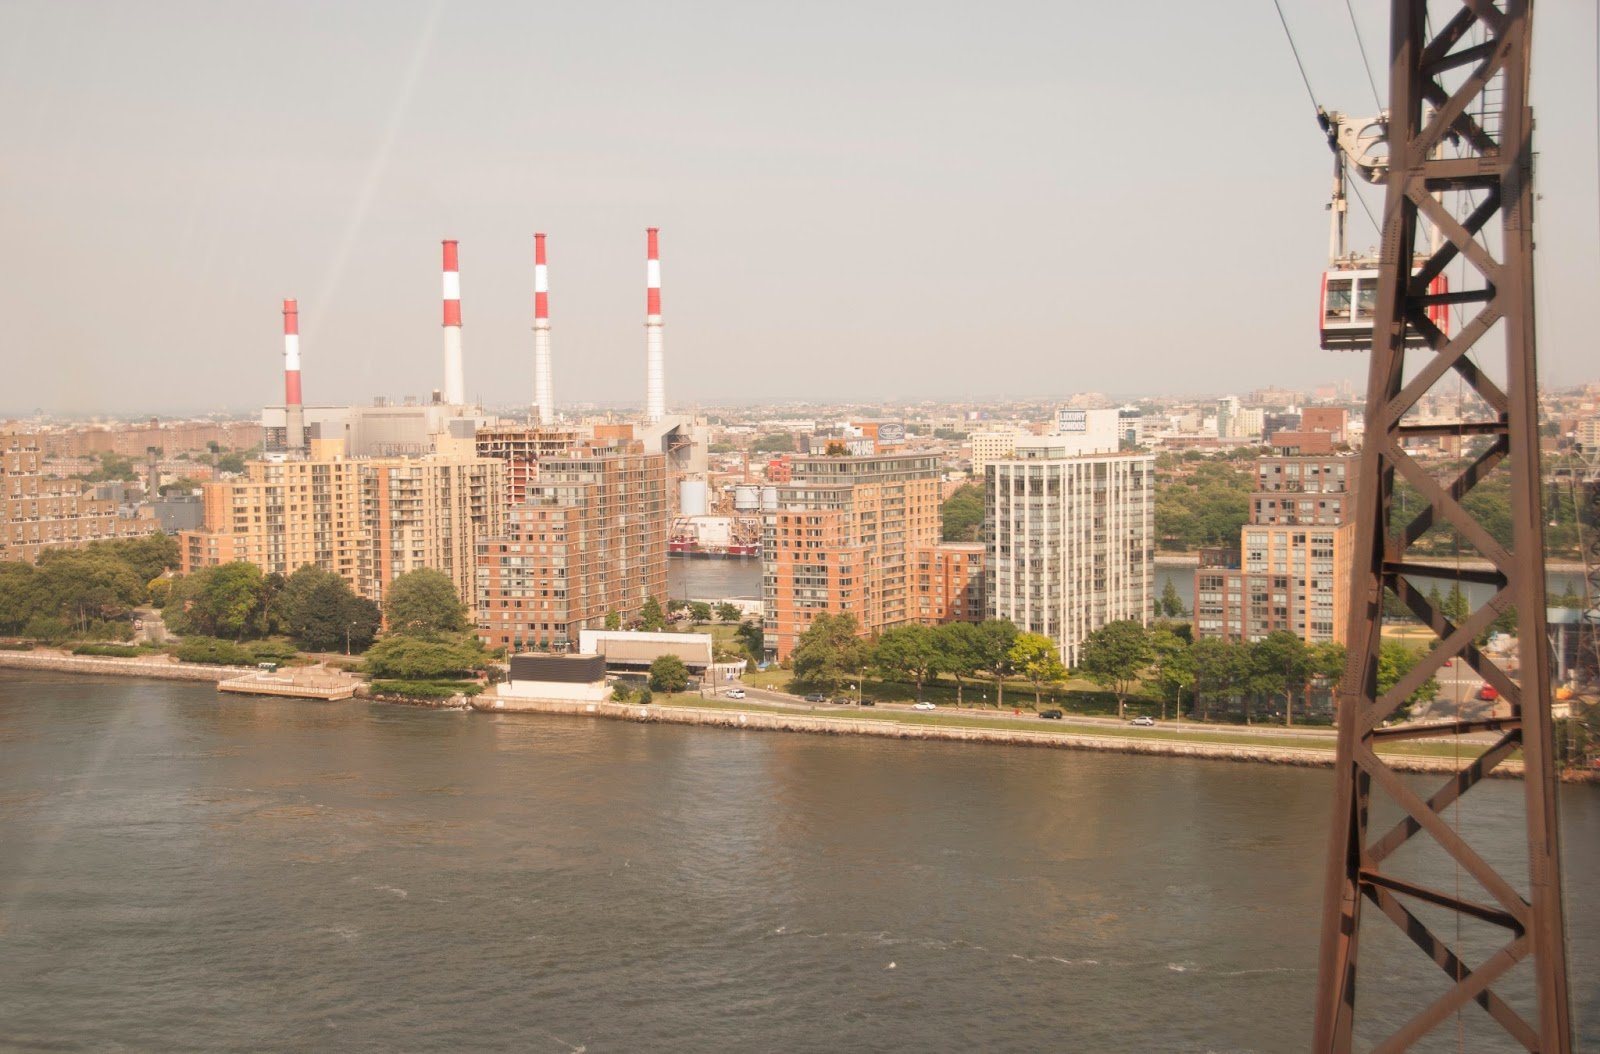 roosevelt island, new york city, usa